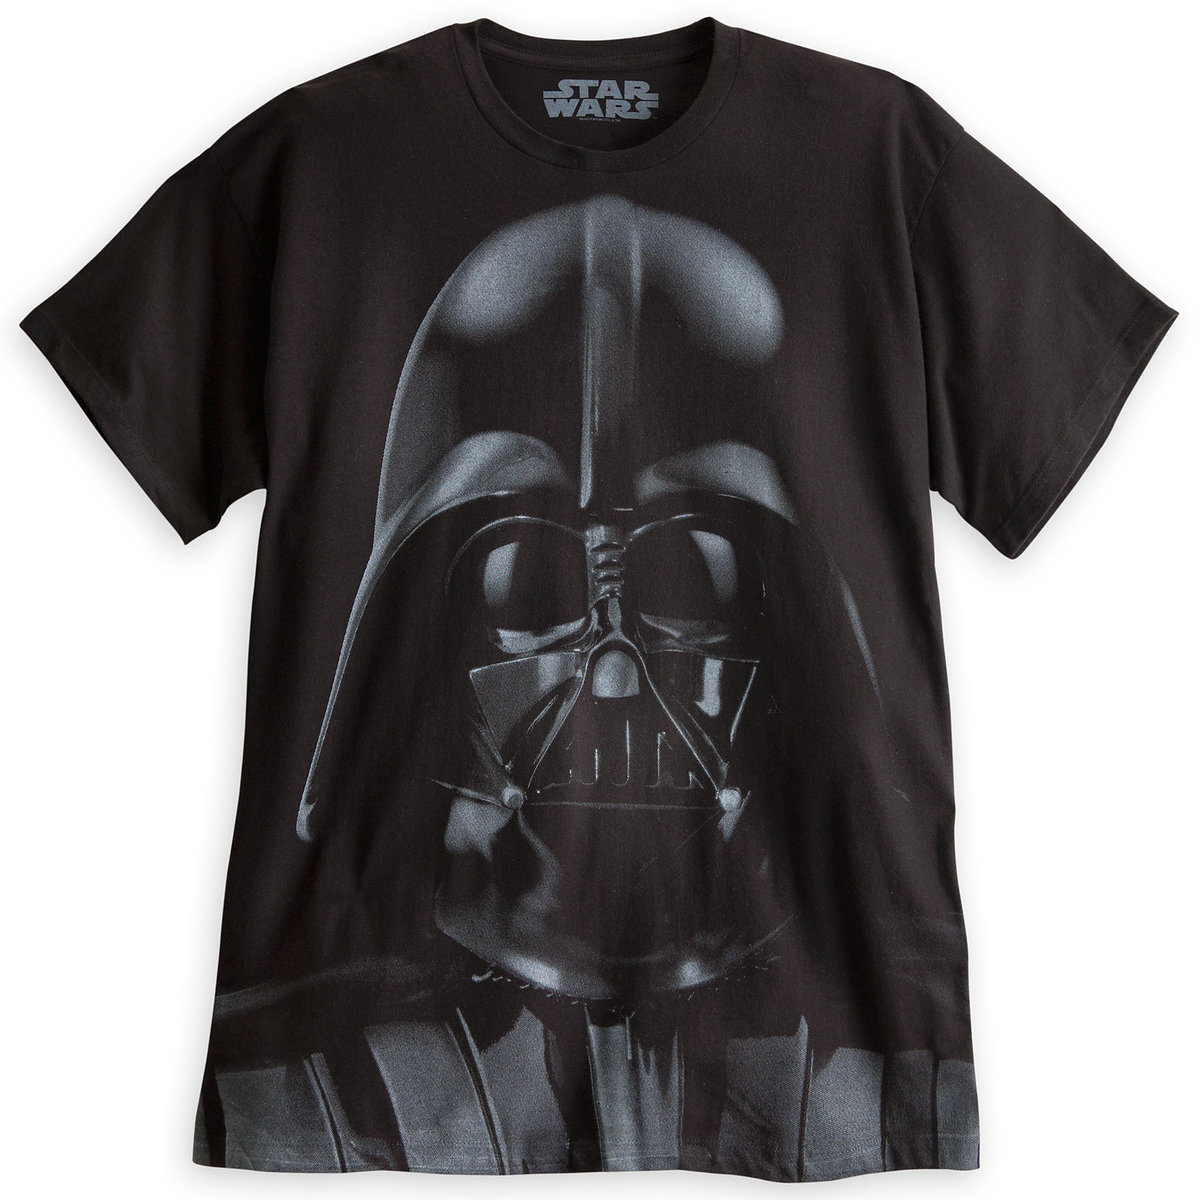 b8248601a07a5 Product Image of Darth Vader Tee for Adults   1